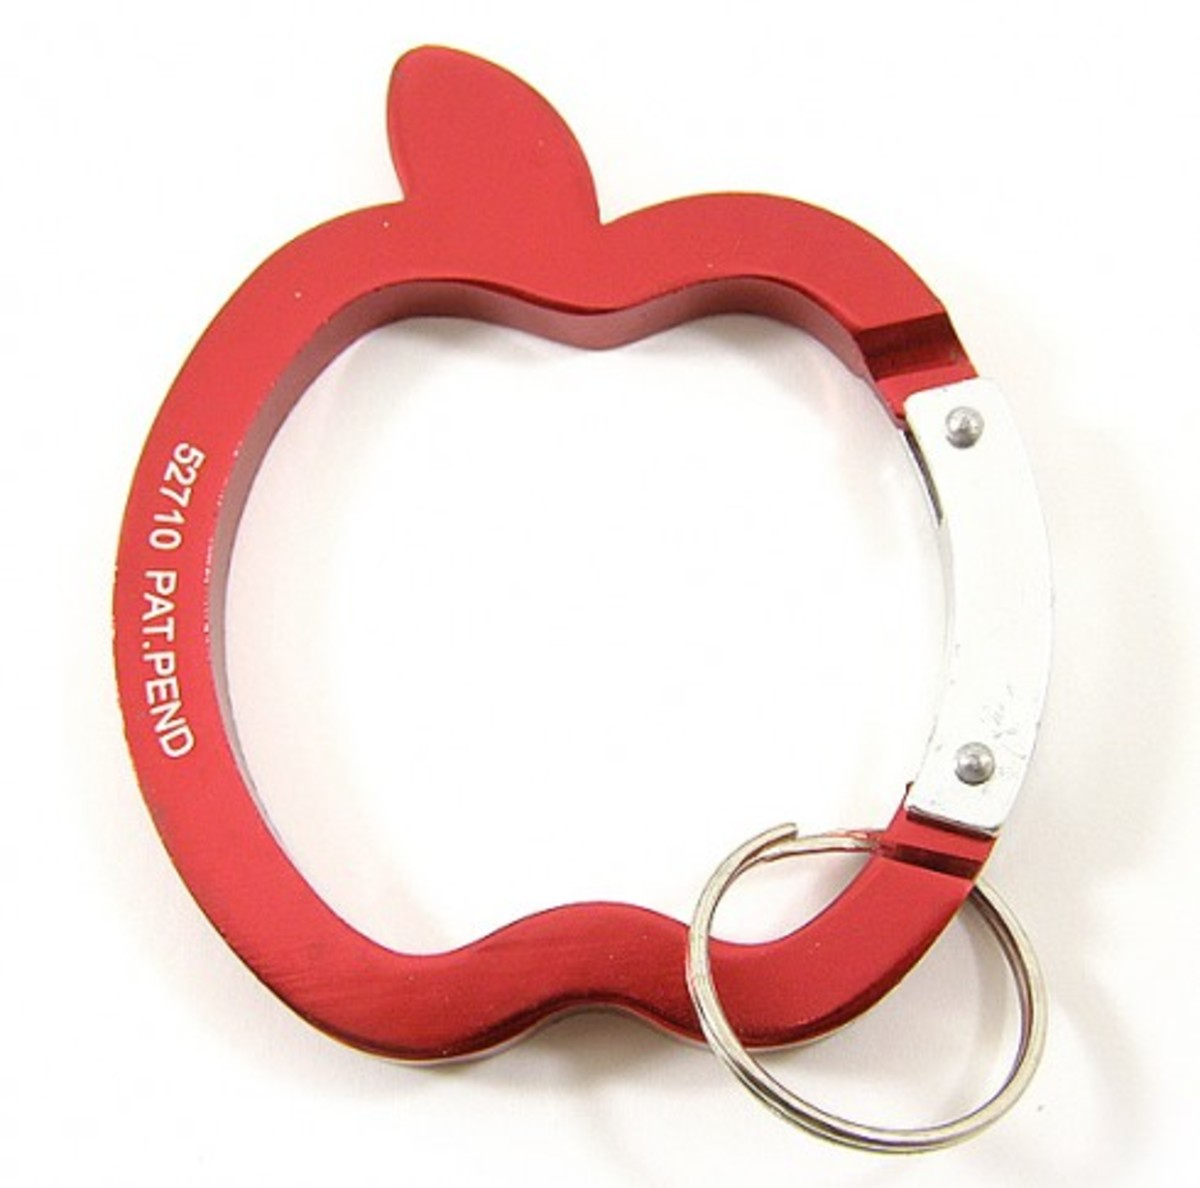 XLARGE - Apple Carabinger